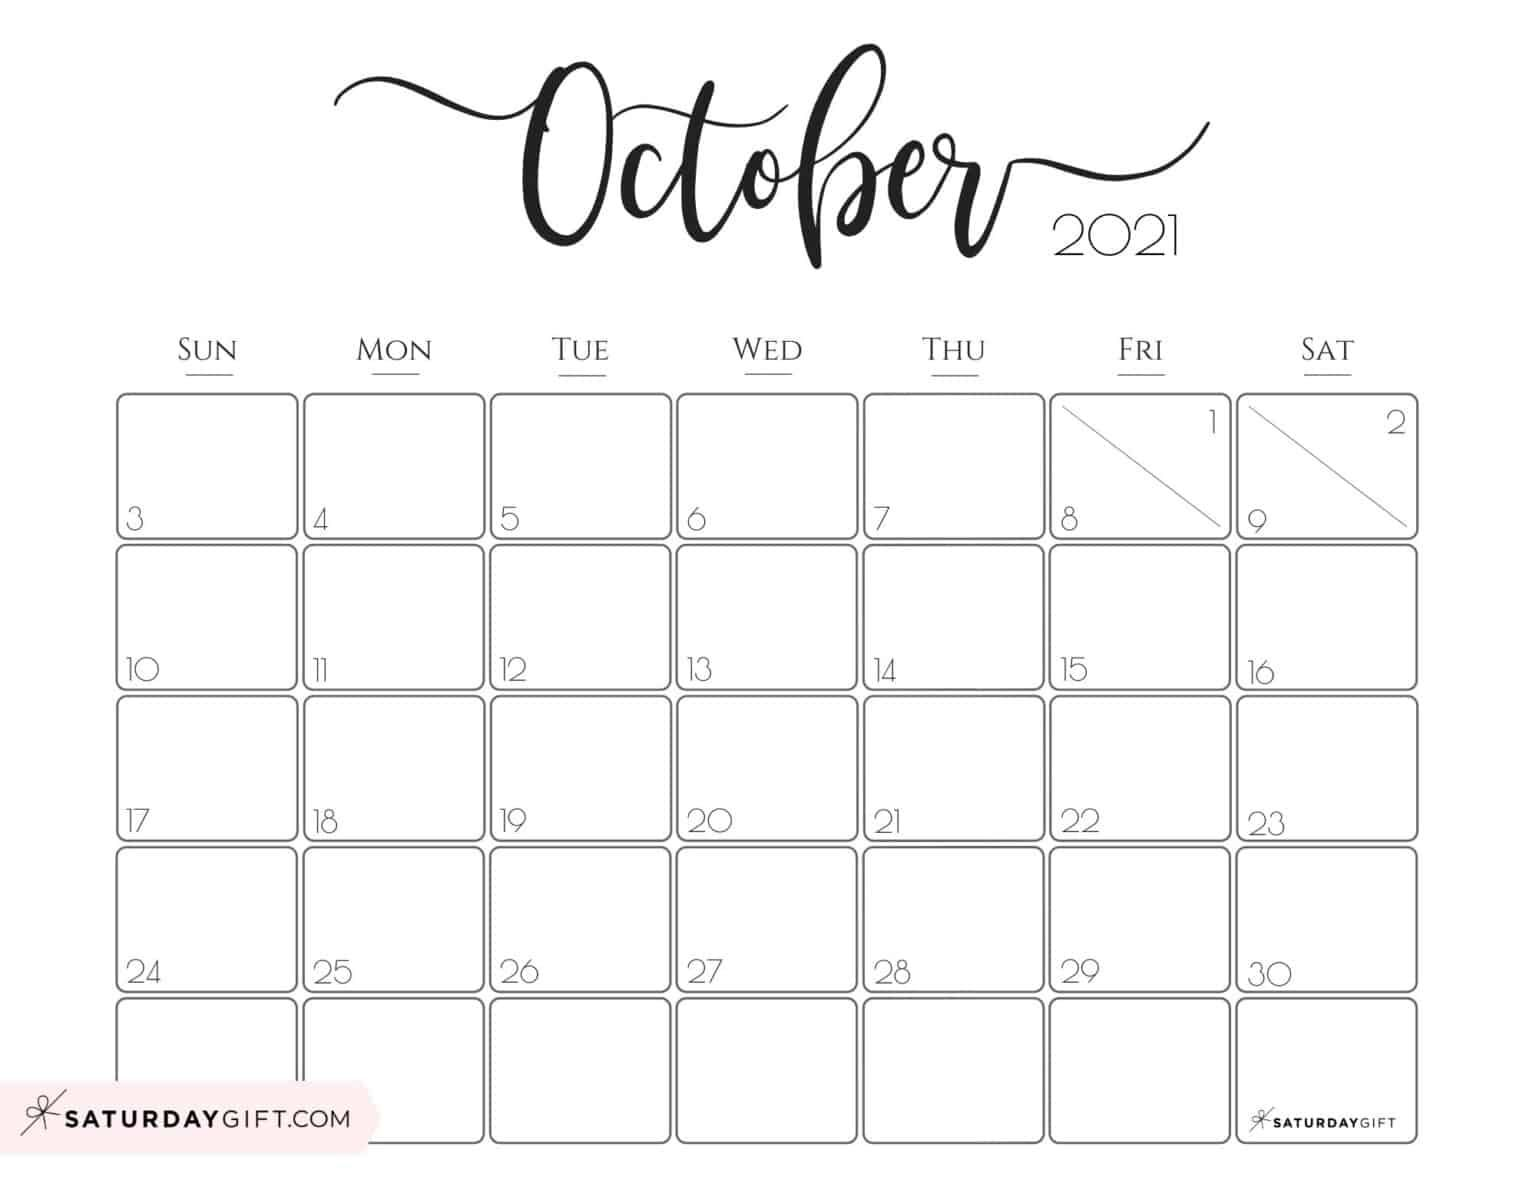 Blank October Calendar 2021 Elegant 2021 Calendar by SaturdayGift   Pretty Printable Monthly